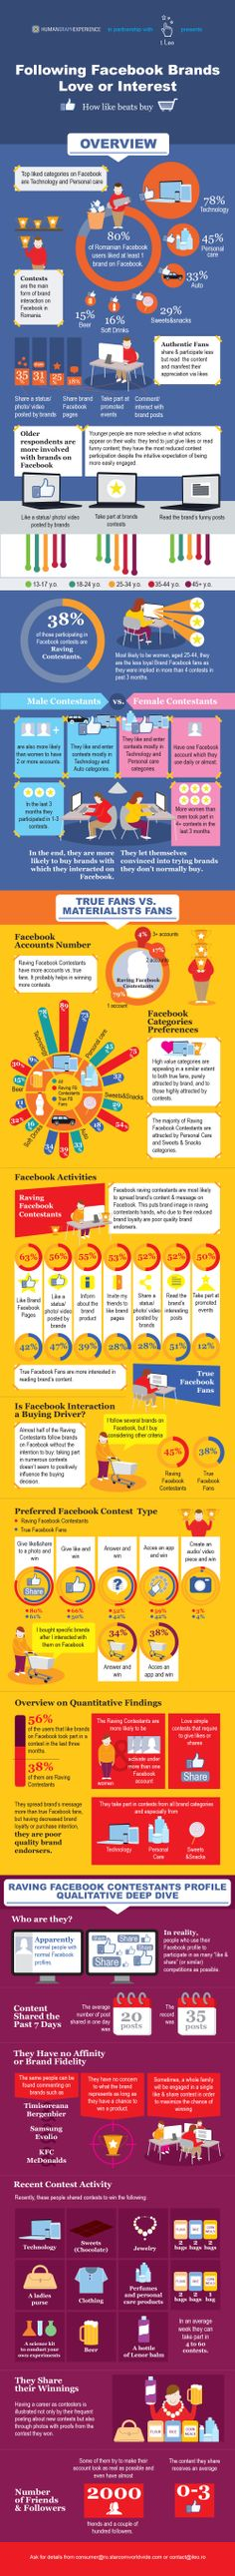 Following Facebook Brands: Love or Interest?